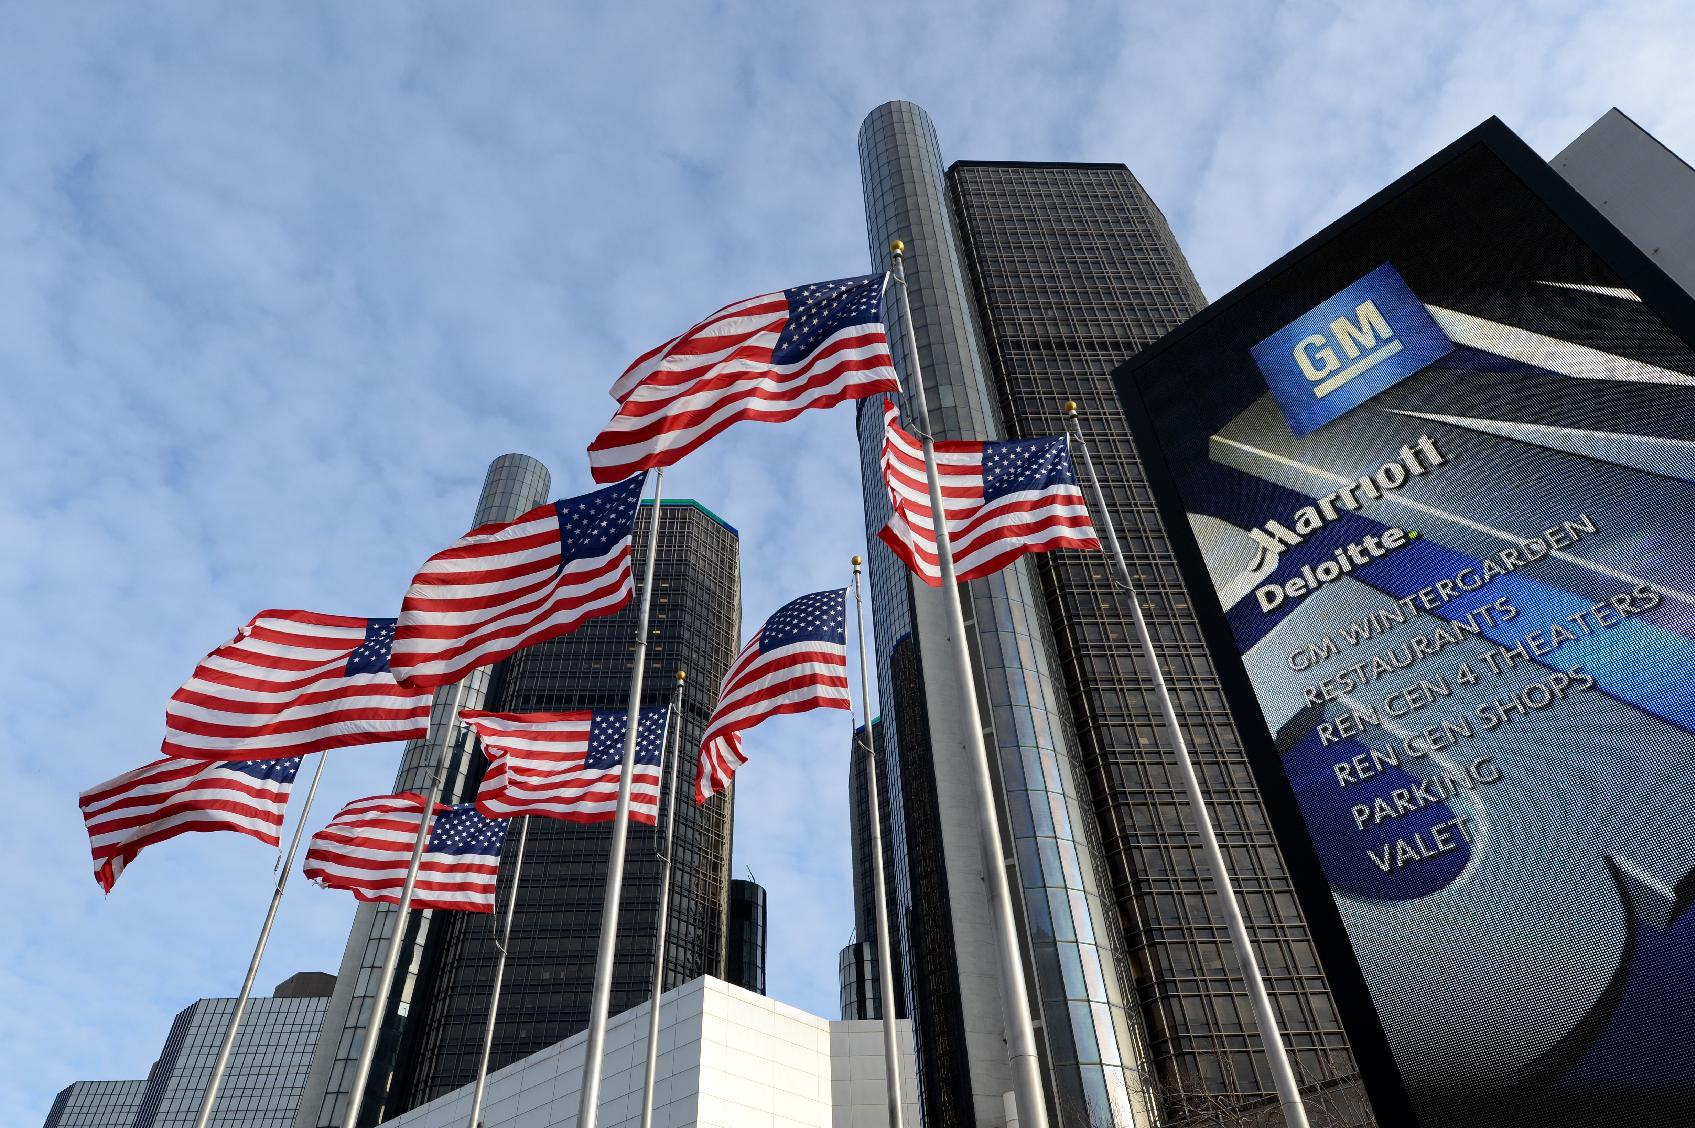 GM, Six new Safety Recalls covering 7.6 million vehicles